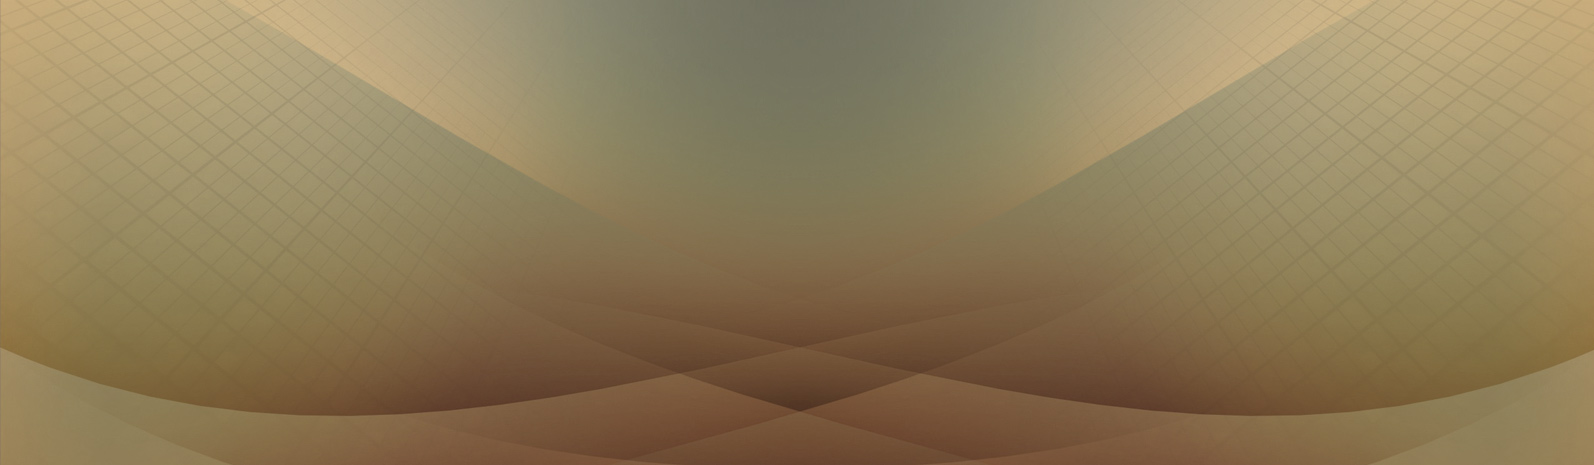 04-SLIDER-Background